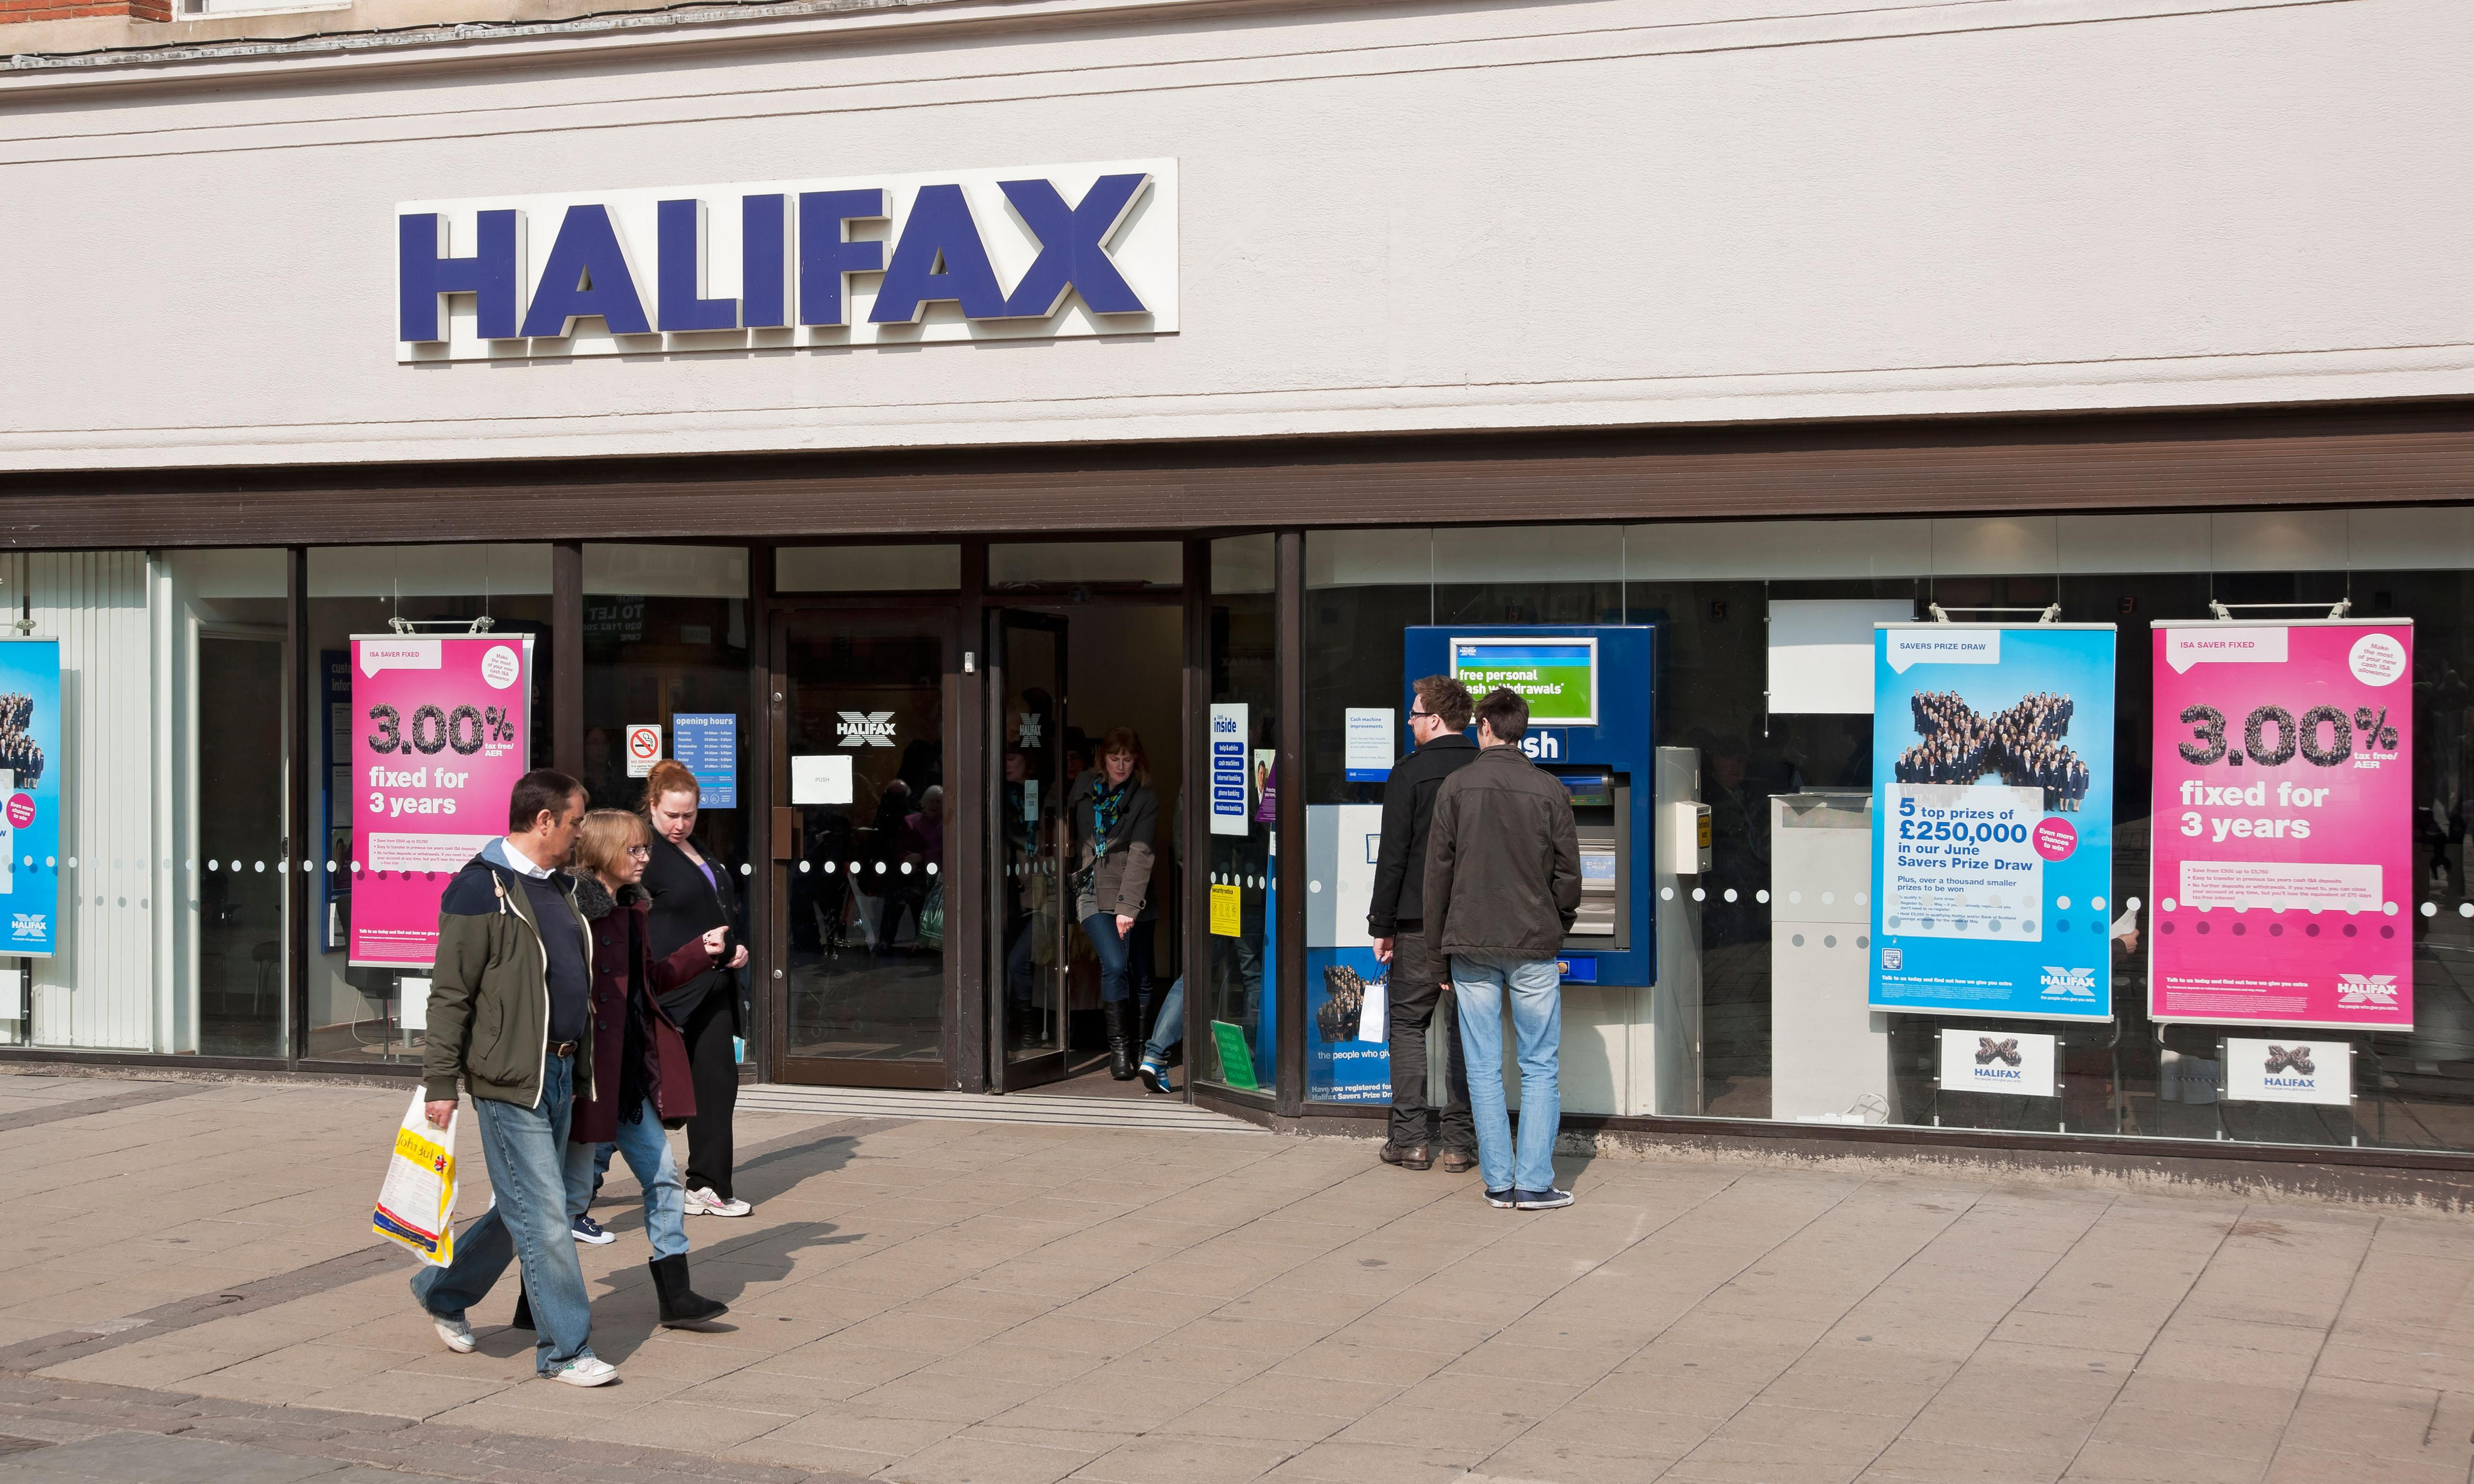 Halifax has been a pain over moving cash between my accounts